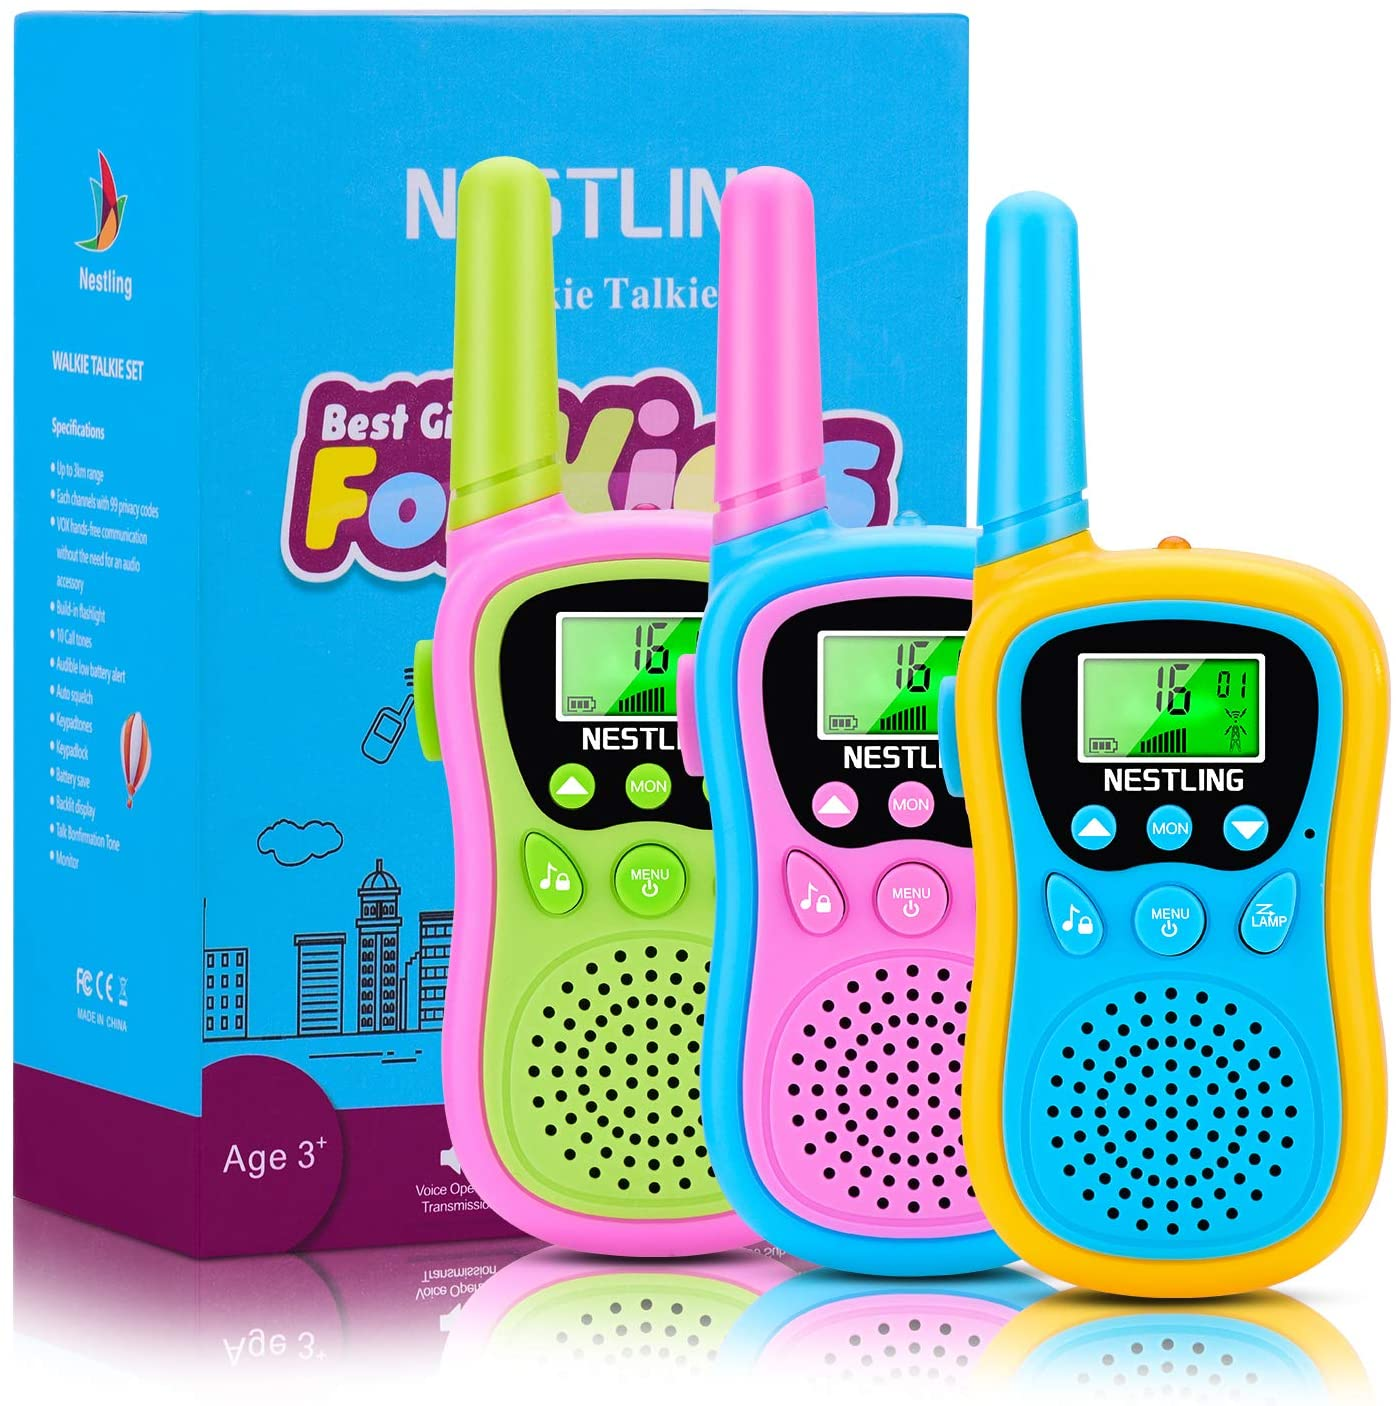 Nestling 3 Pack Walkie Talkies for Kids, 22 Channels 2 Way Radio Toy with Backlit LCD Flashlight, 3 Miles Range for 3-12 Year Old Boys Girls Outside, Camping, Hiking